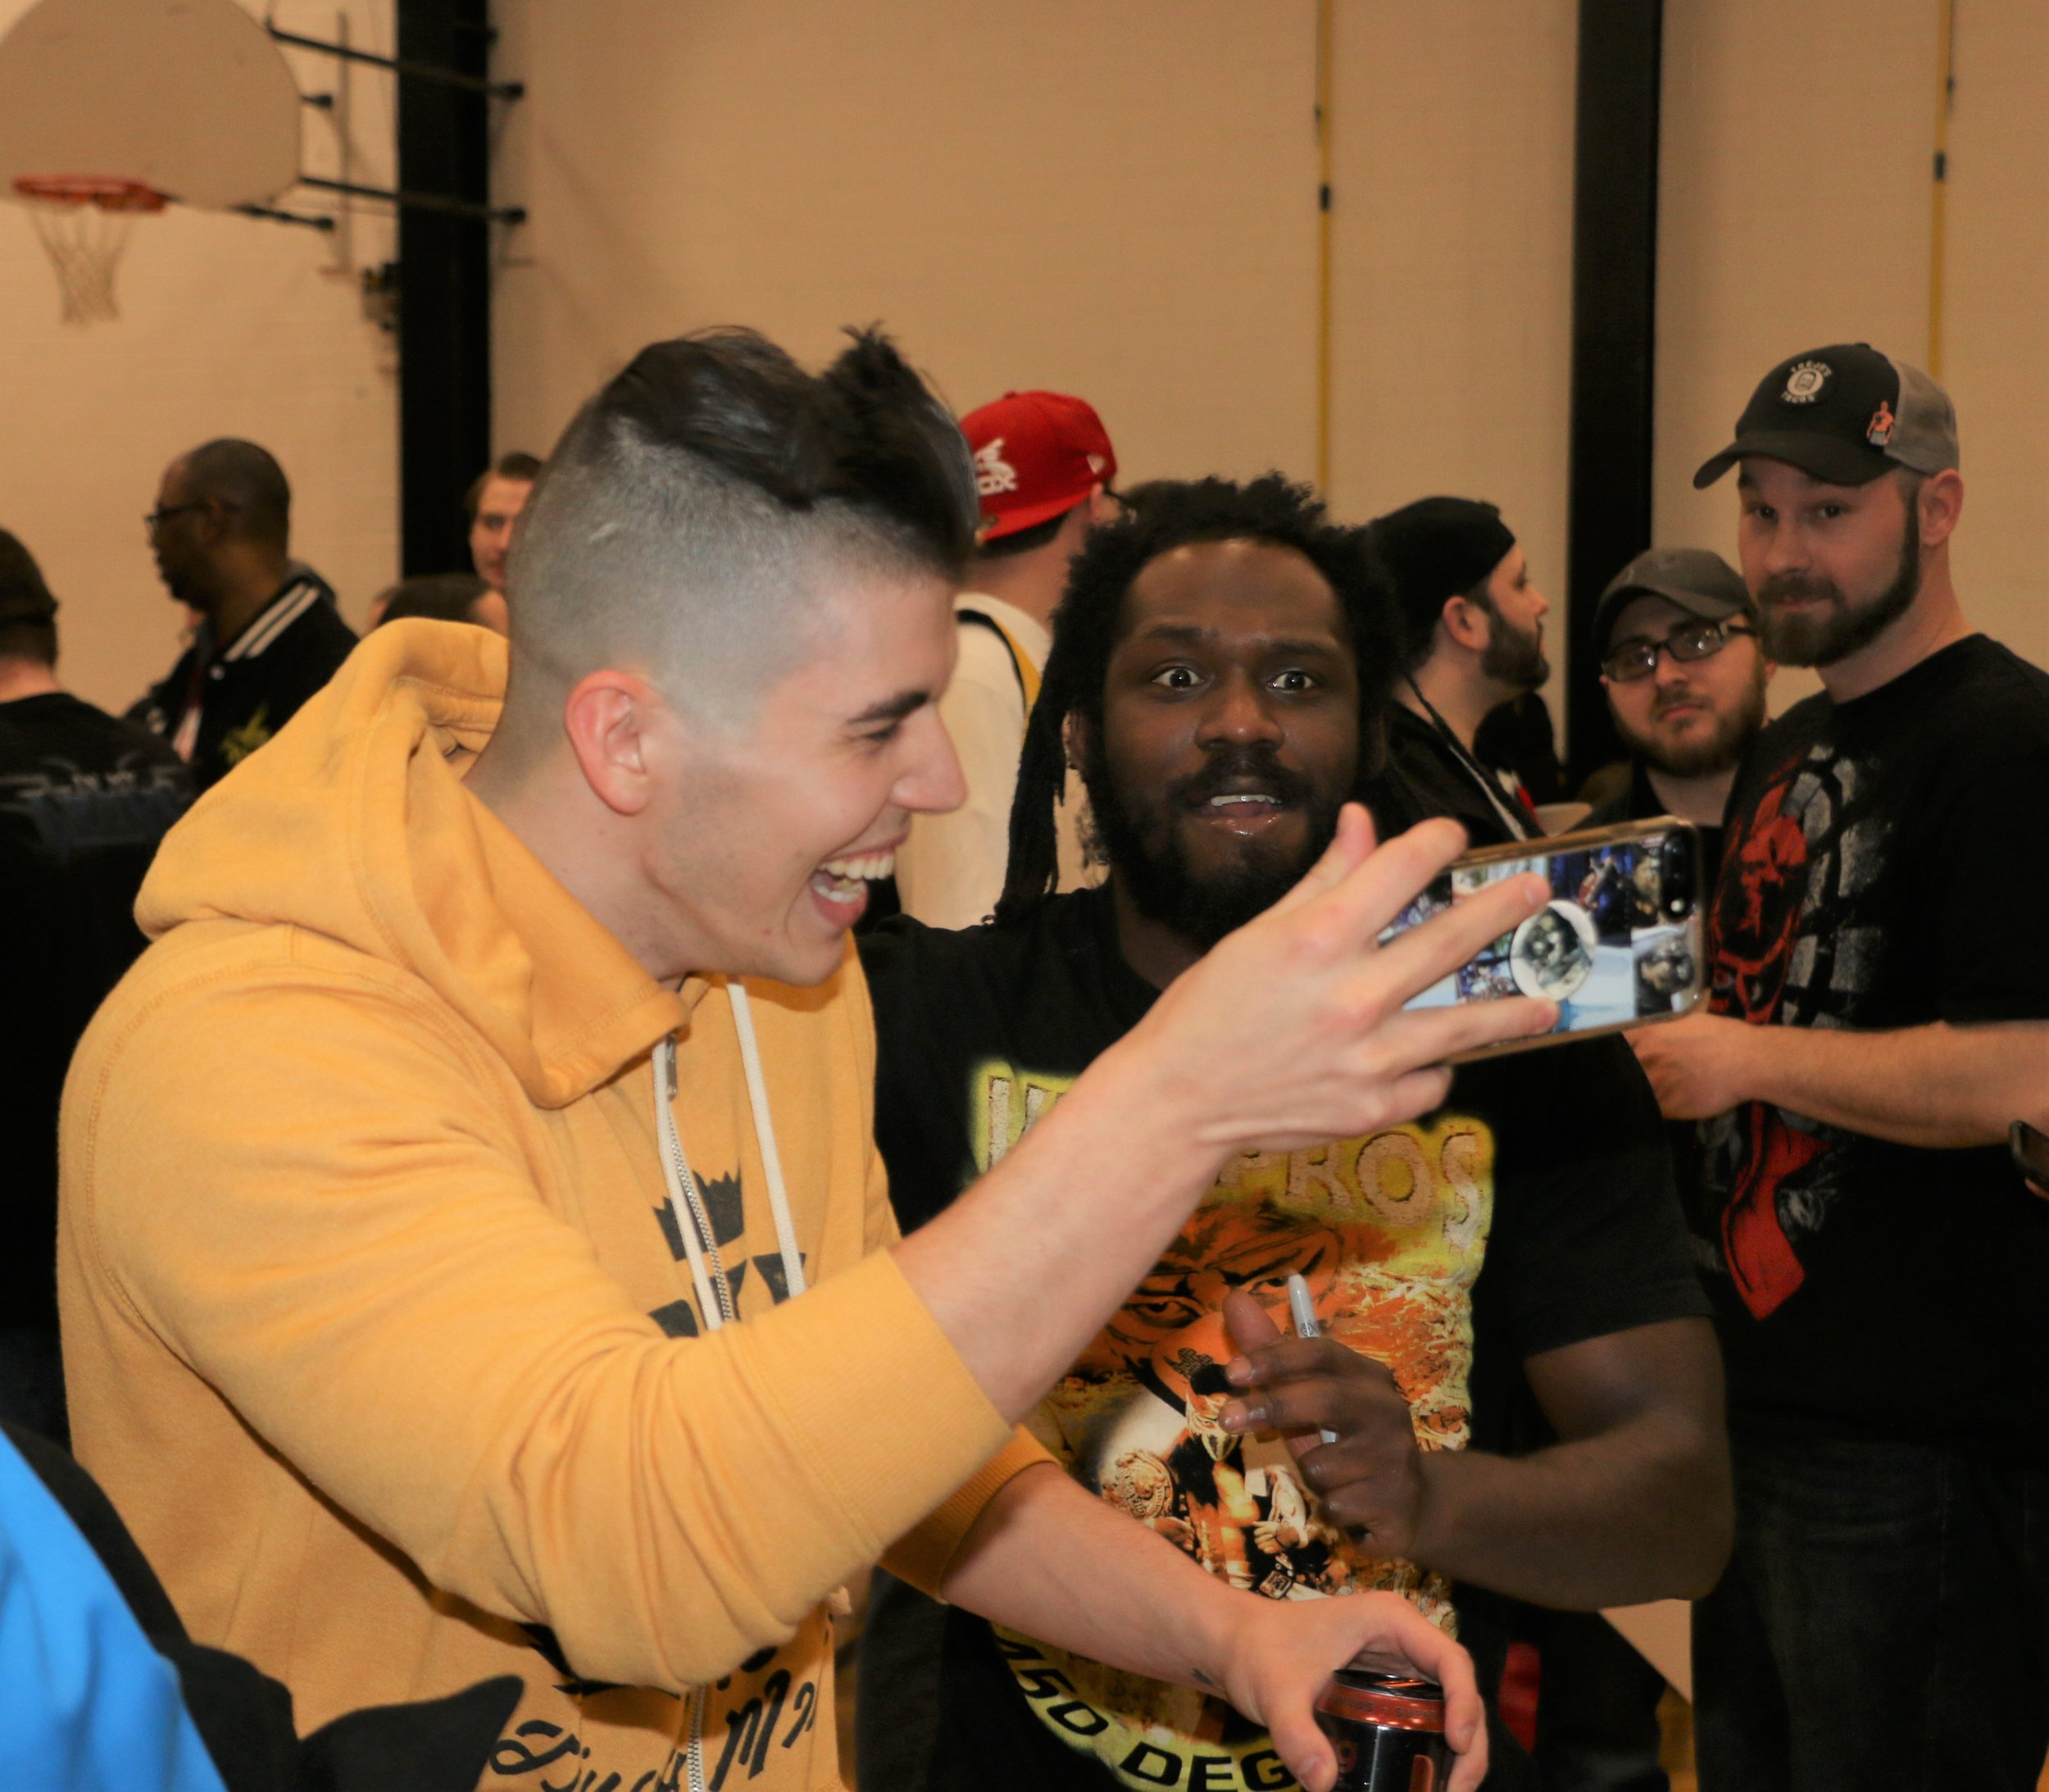 Sammy Guevara, left, and Rich Swann pose for selfies during the VIP Fan Fest.